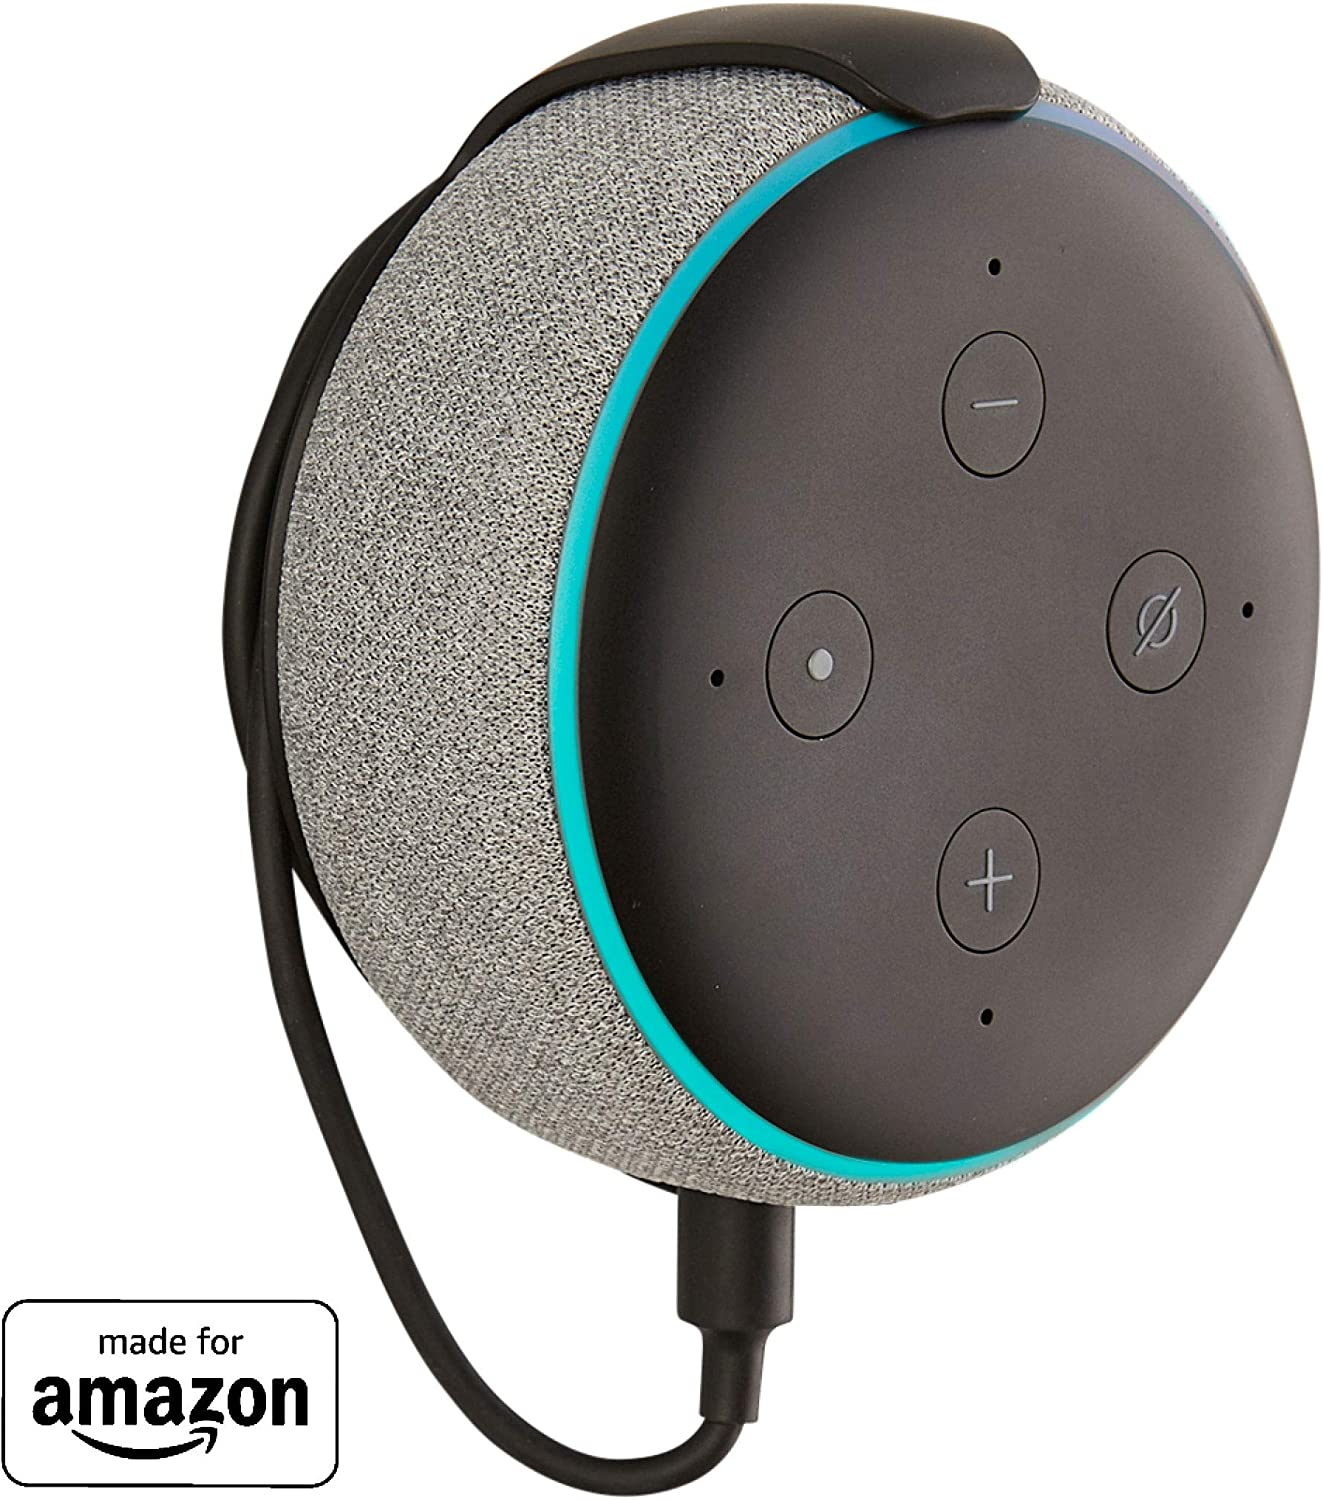 Made for Amazon Mount for Echo Dot (3rd Gen) - Black